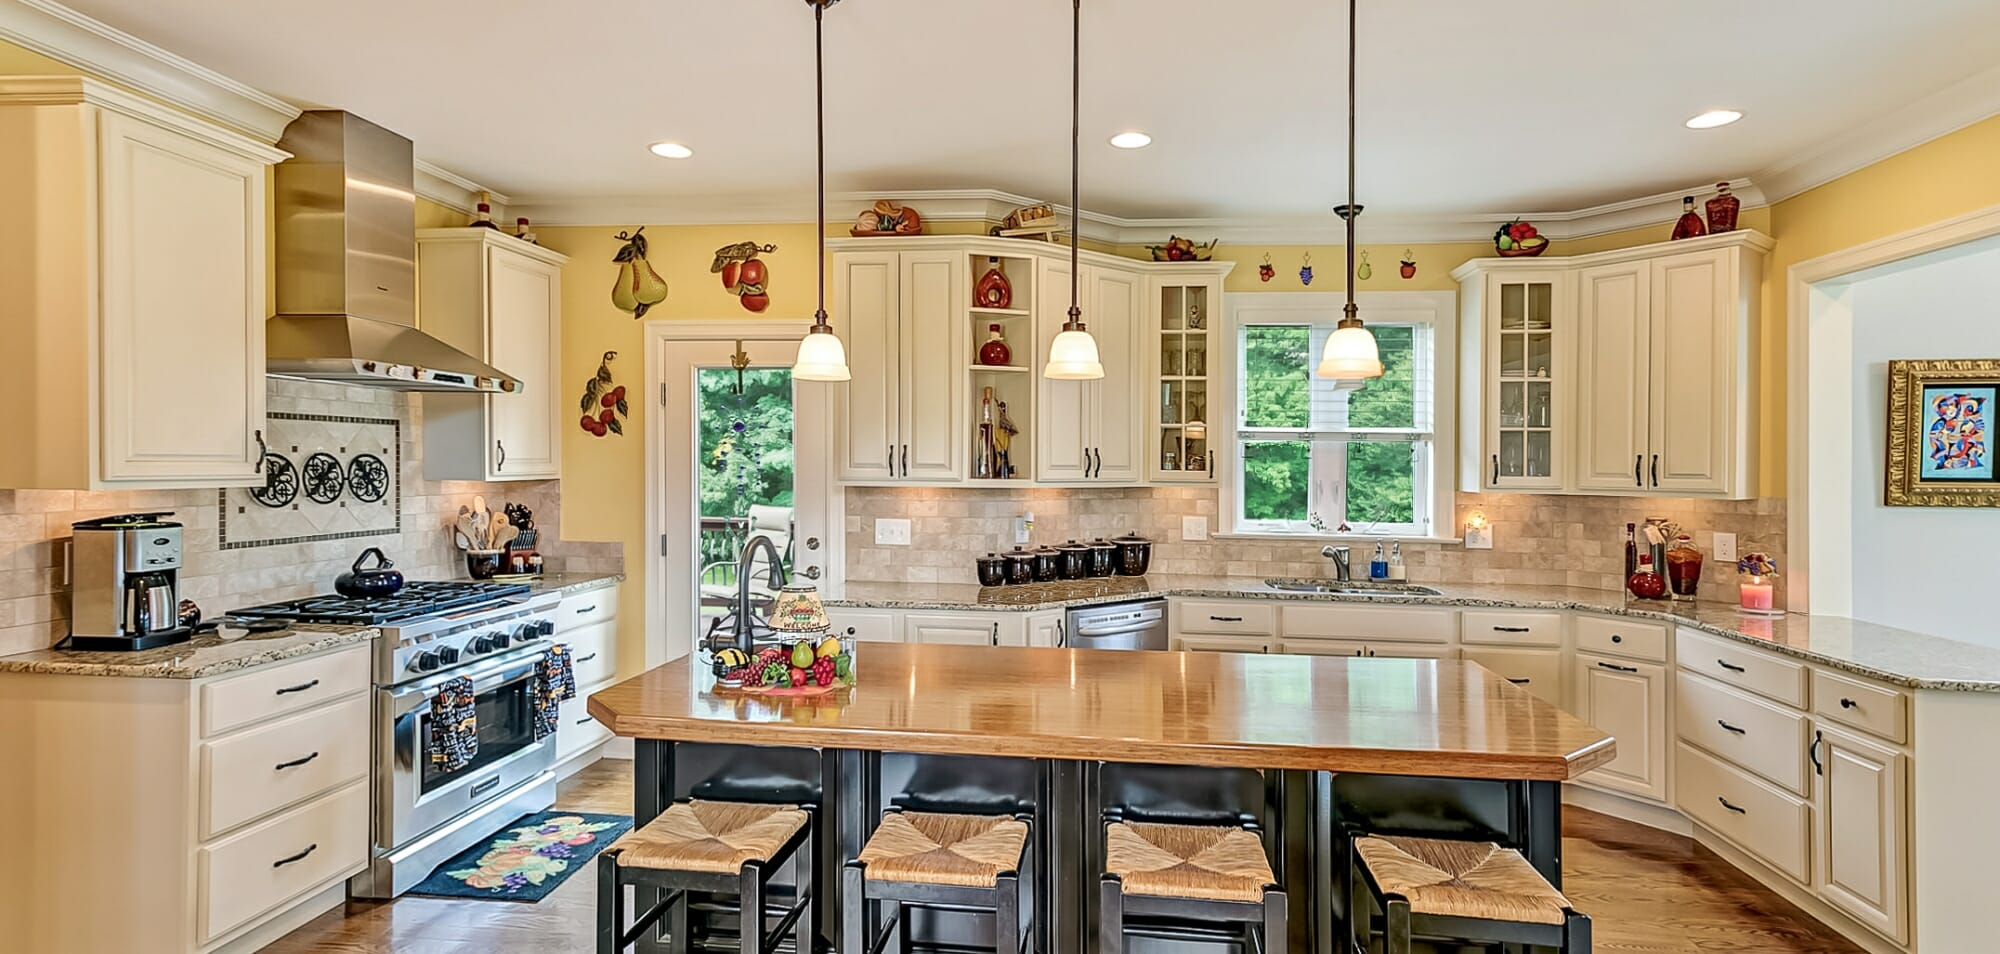 Kitchen stainless steel appliances, Large kitchen Island with 4 stools just gorgeous